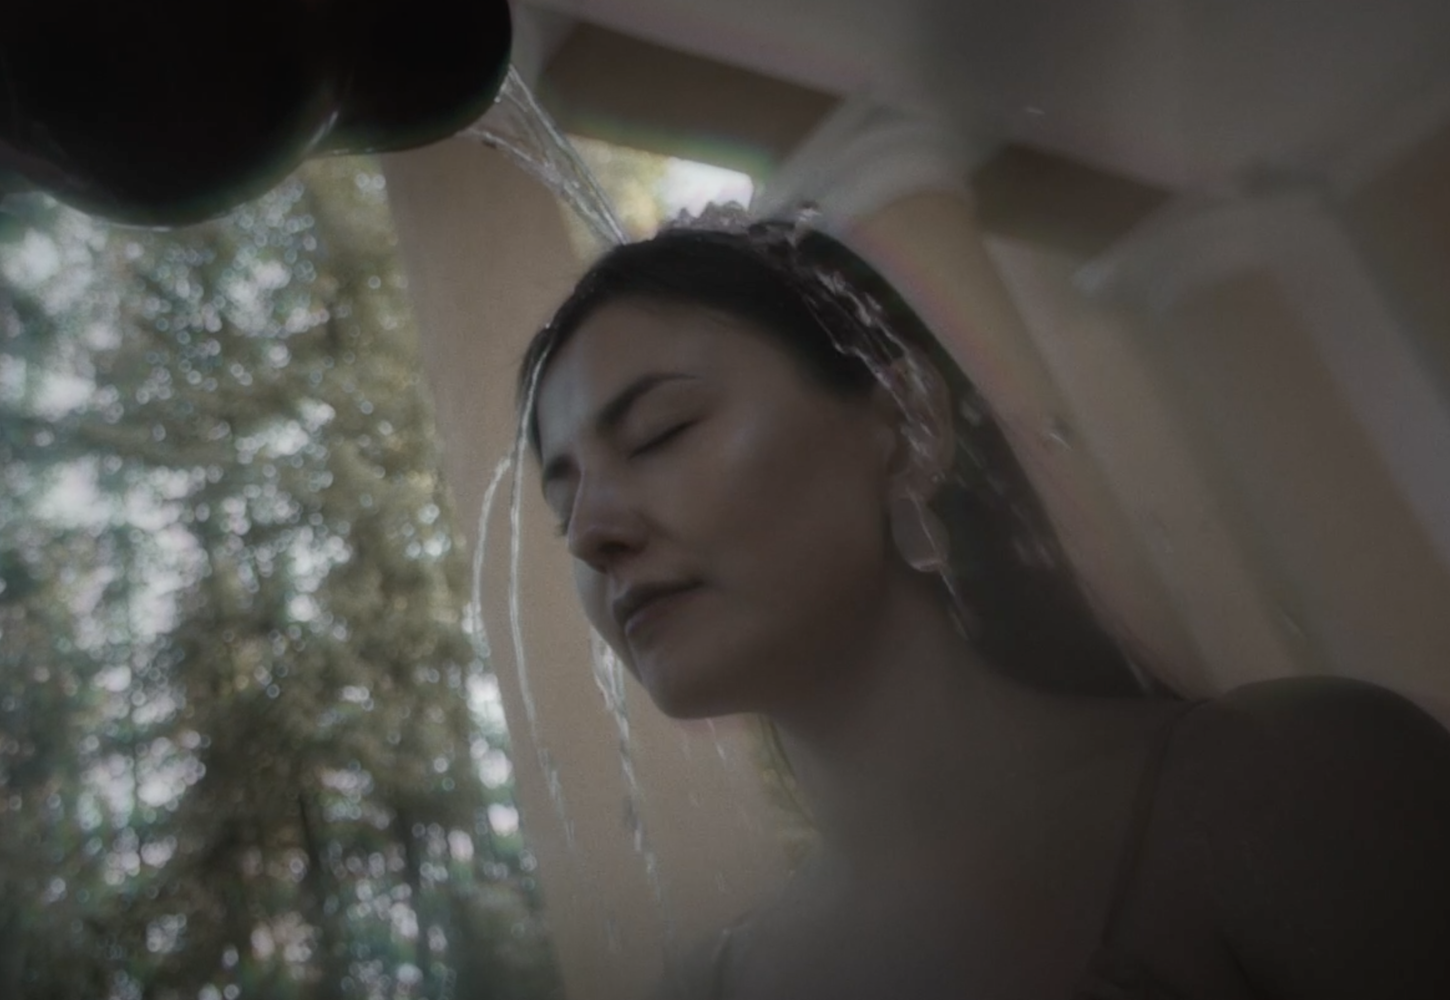 Can you believe? Watch Polish-Chinese musical artist Ai fen's ethereal ode to the past year